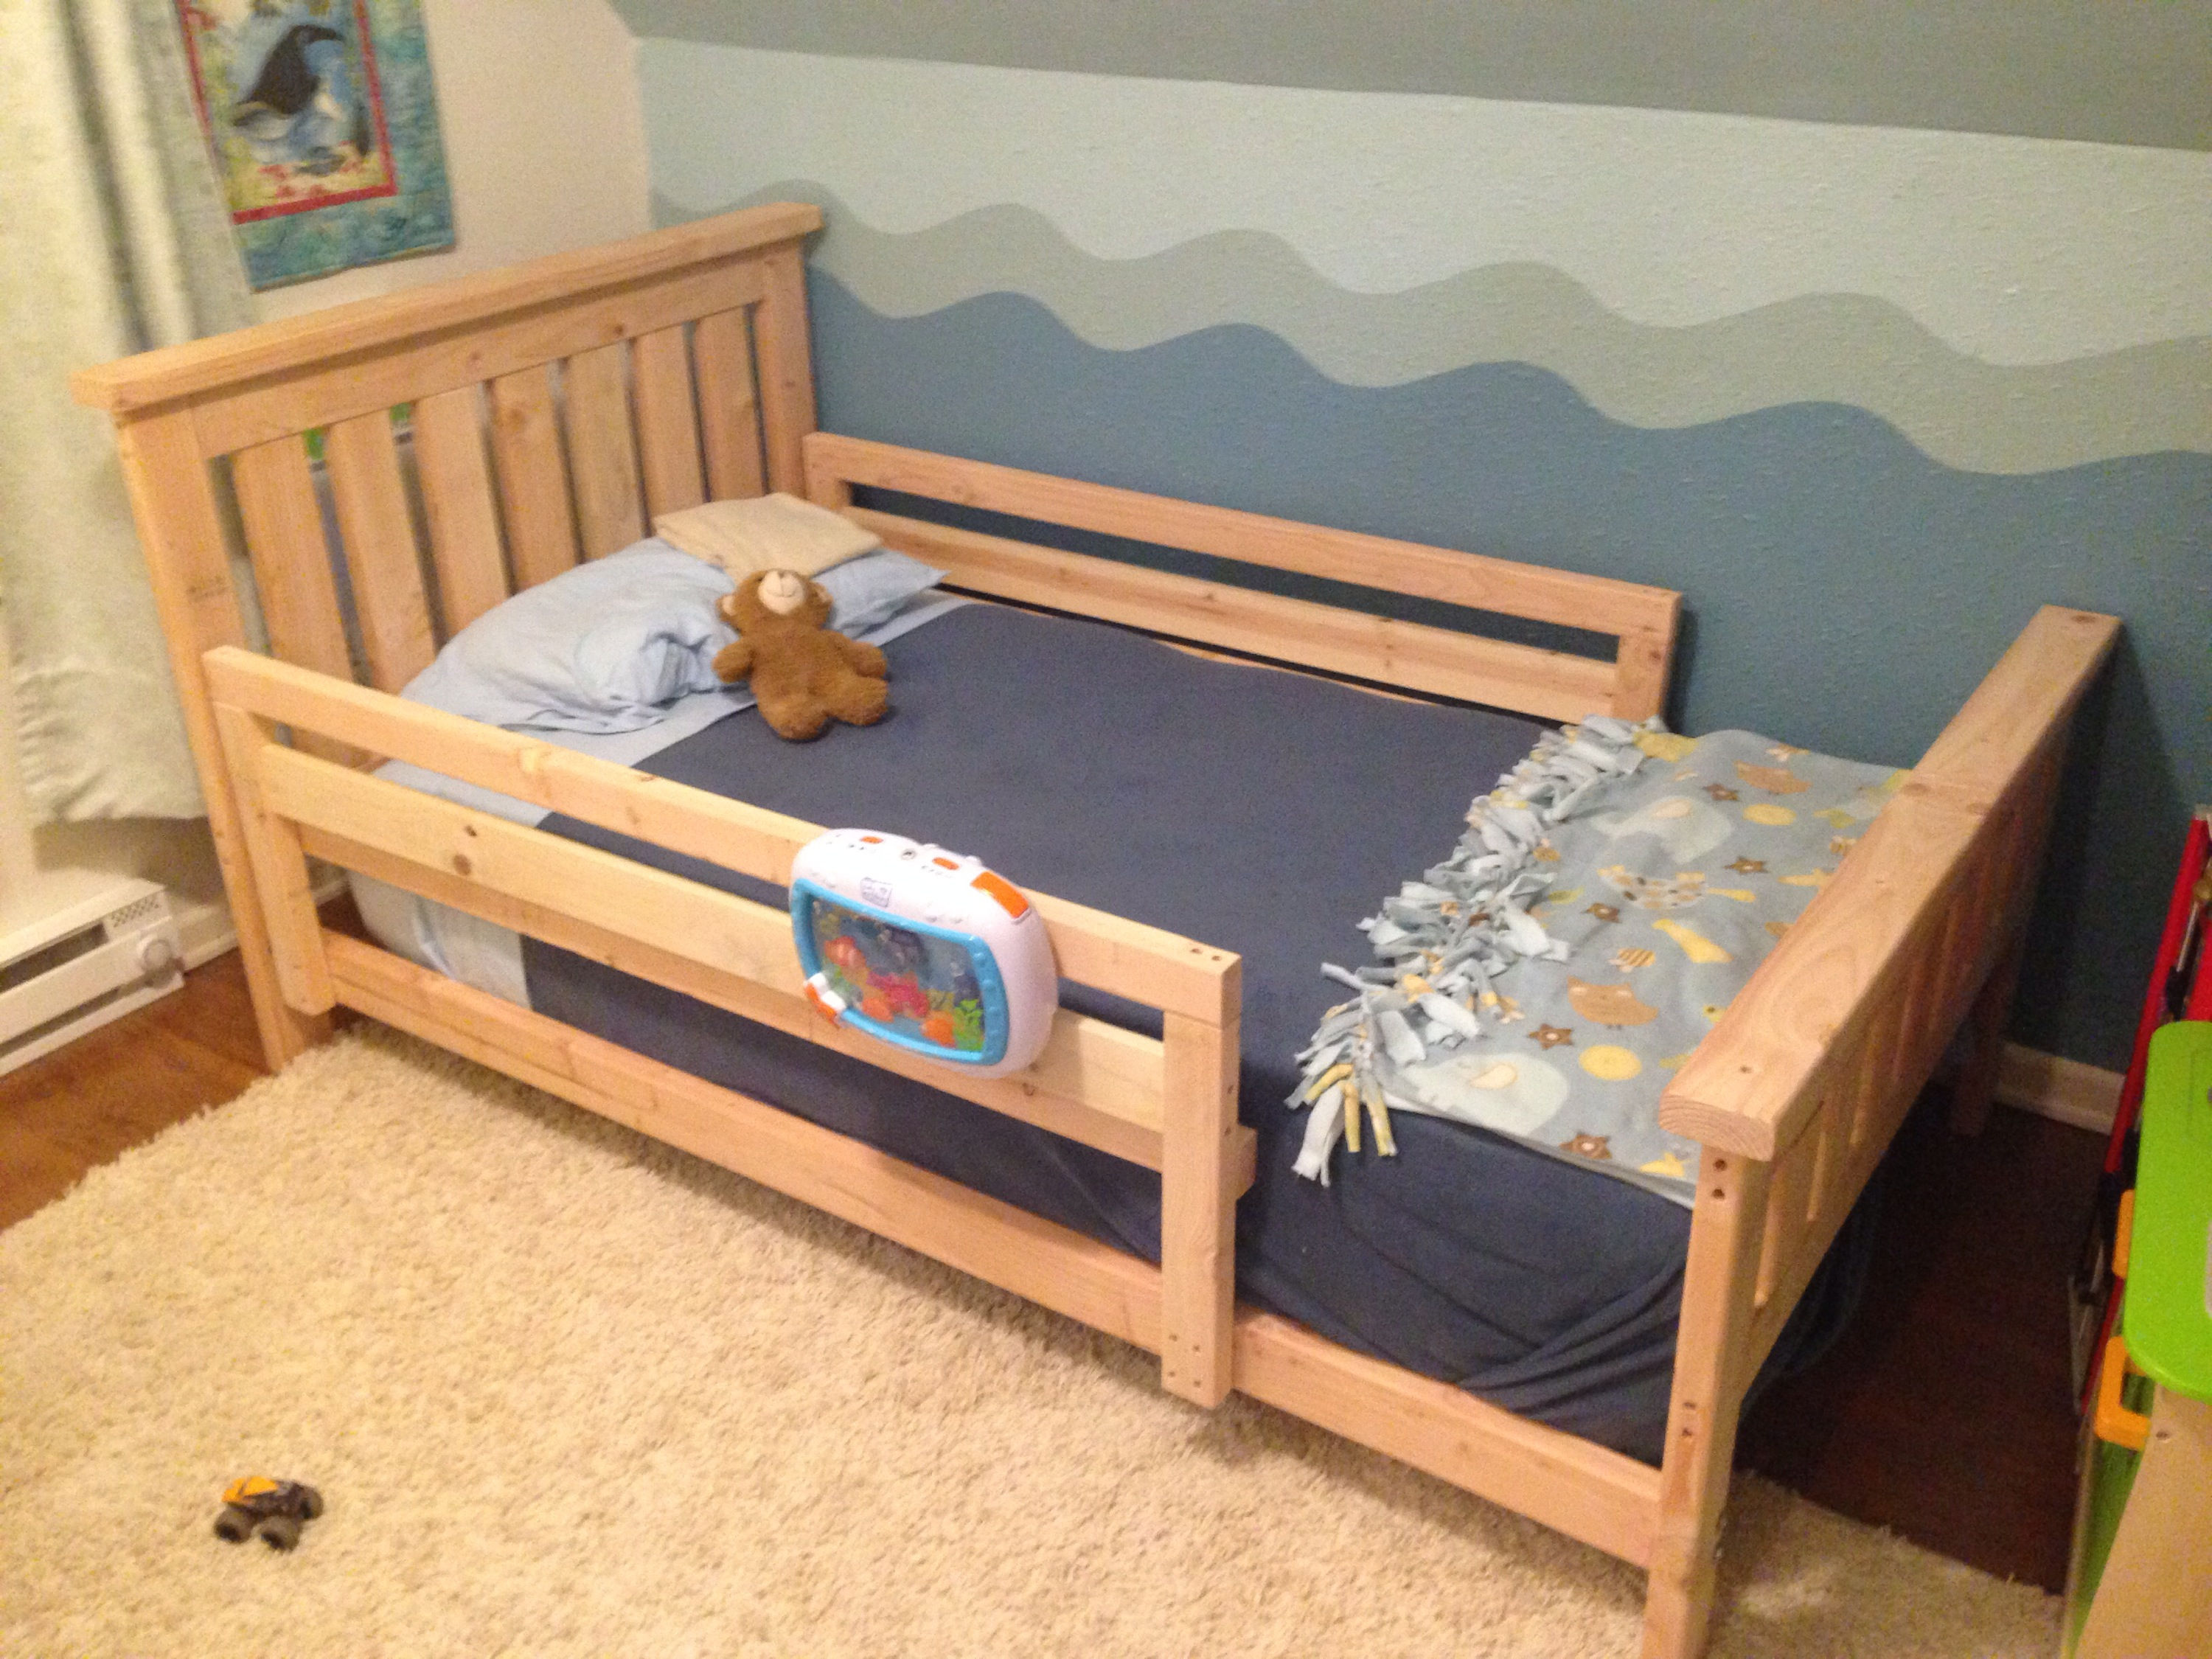 DIY 2x4 Bed Frame